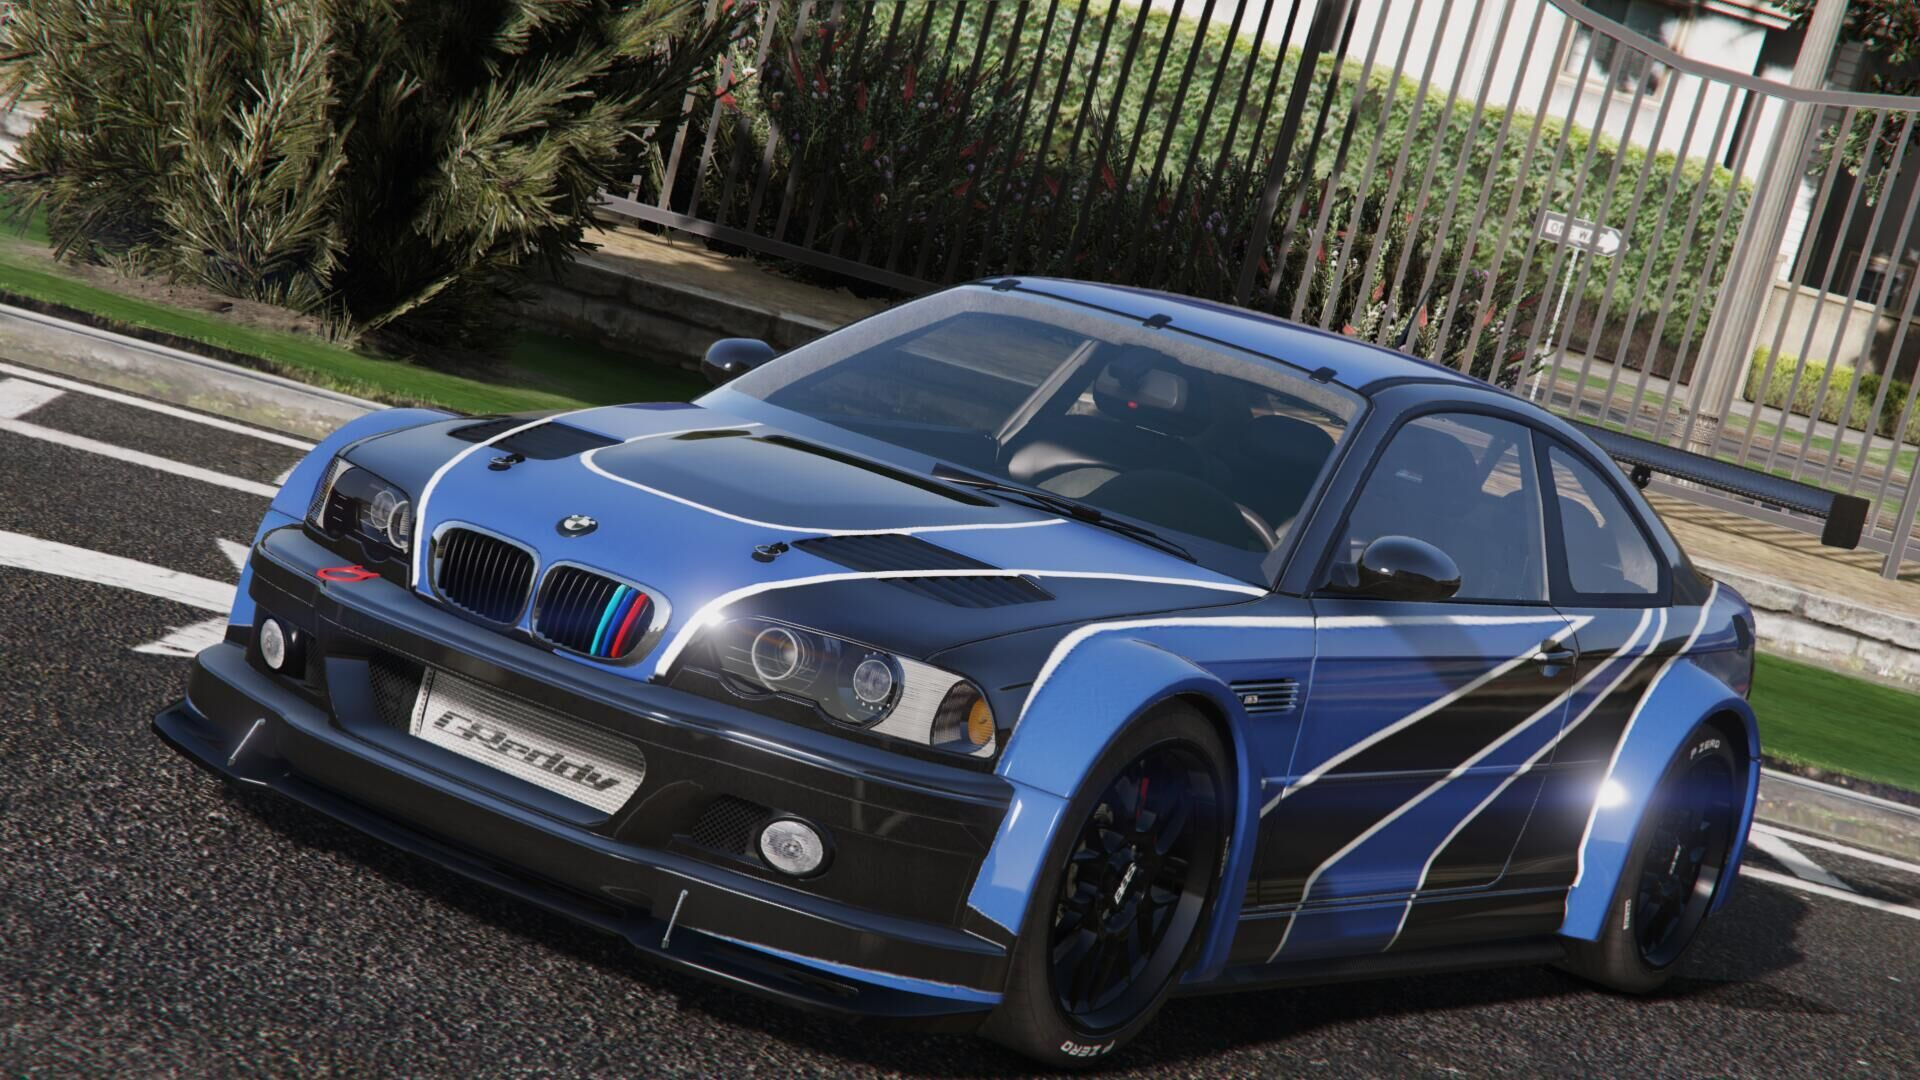 Bmw E46 M3 >> BMW M3 E46 GTR [Add-On] - GTA5-Mods.com